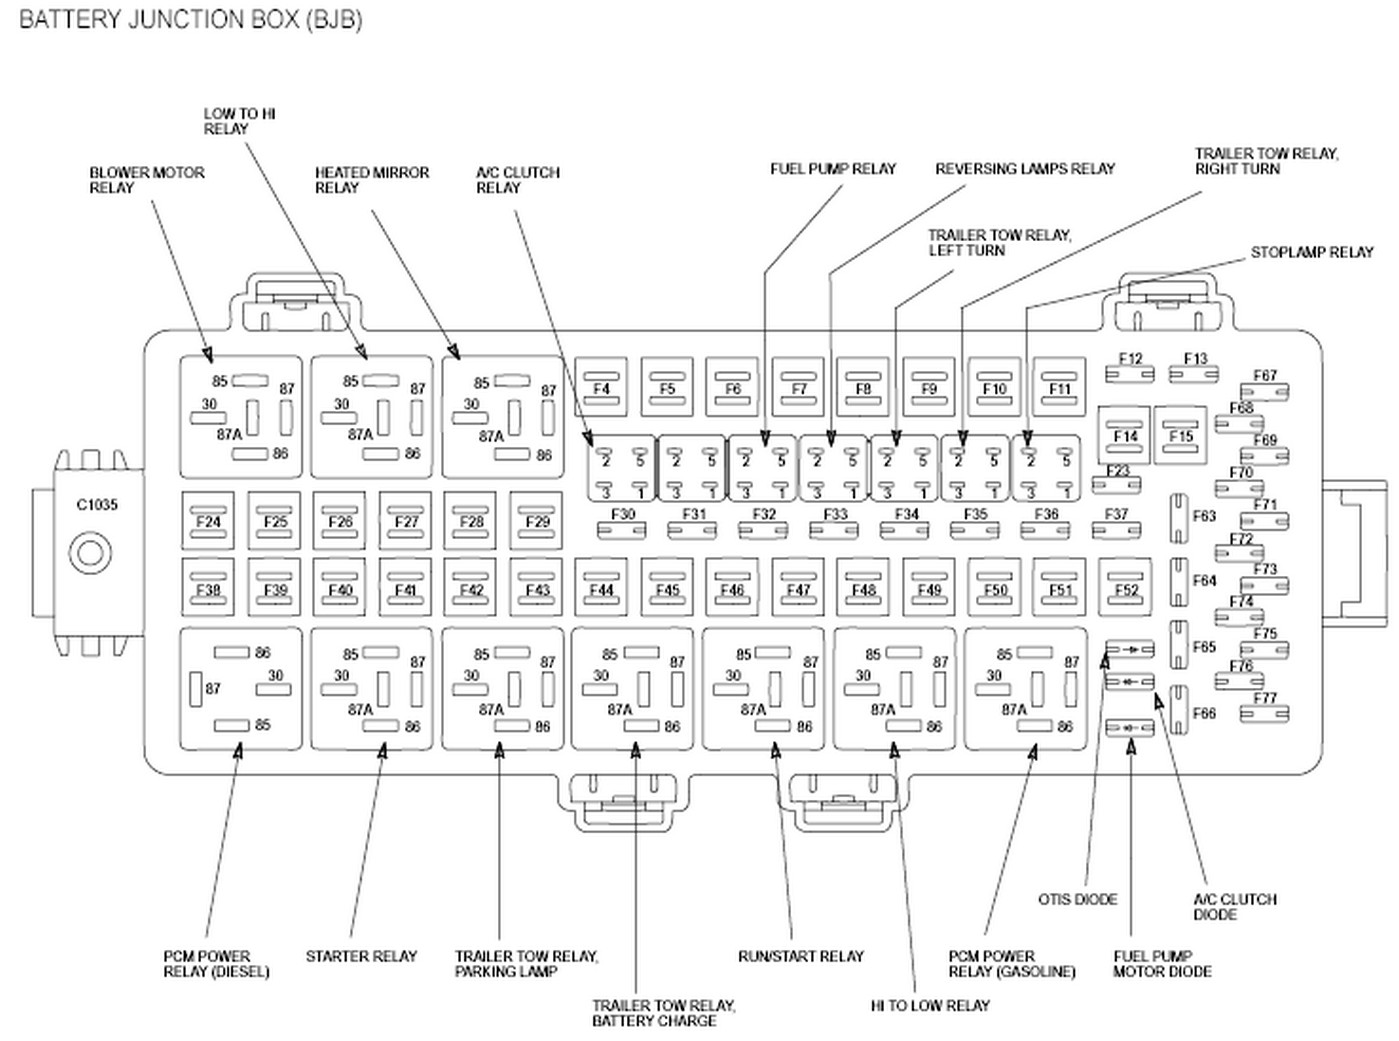 Fuse Box Buy Spares For Ford F Fuses And Wiring Library 2013 150 Supercrew Diagram 08 350 List Of Schematic Circuit U2022 2008